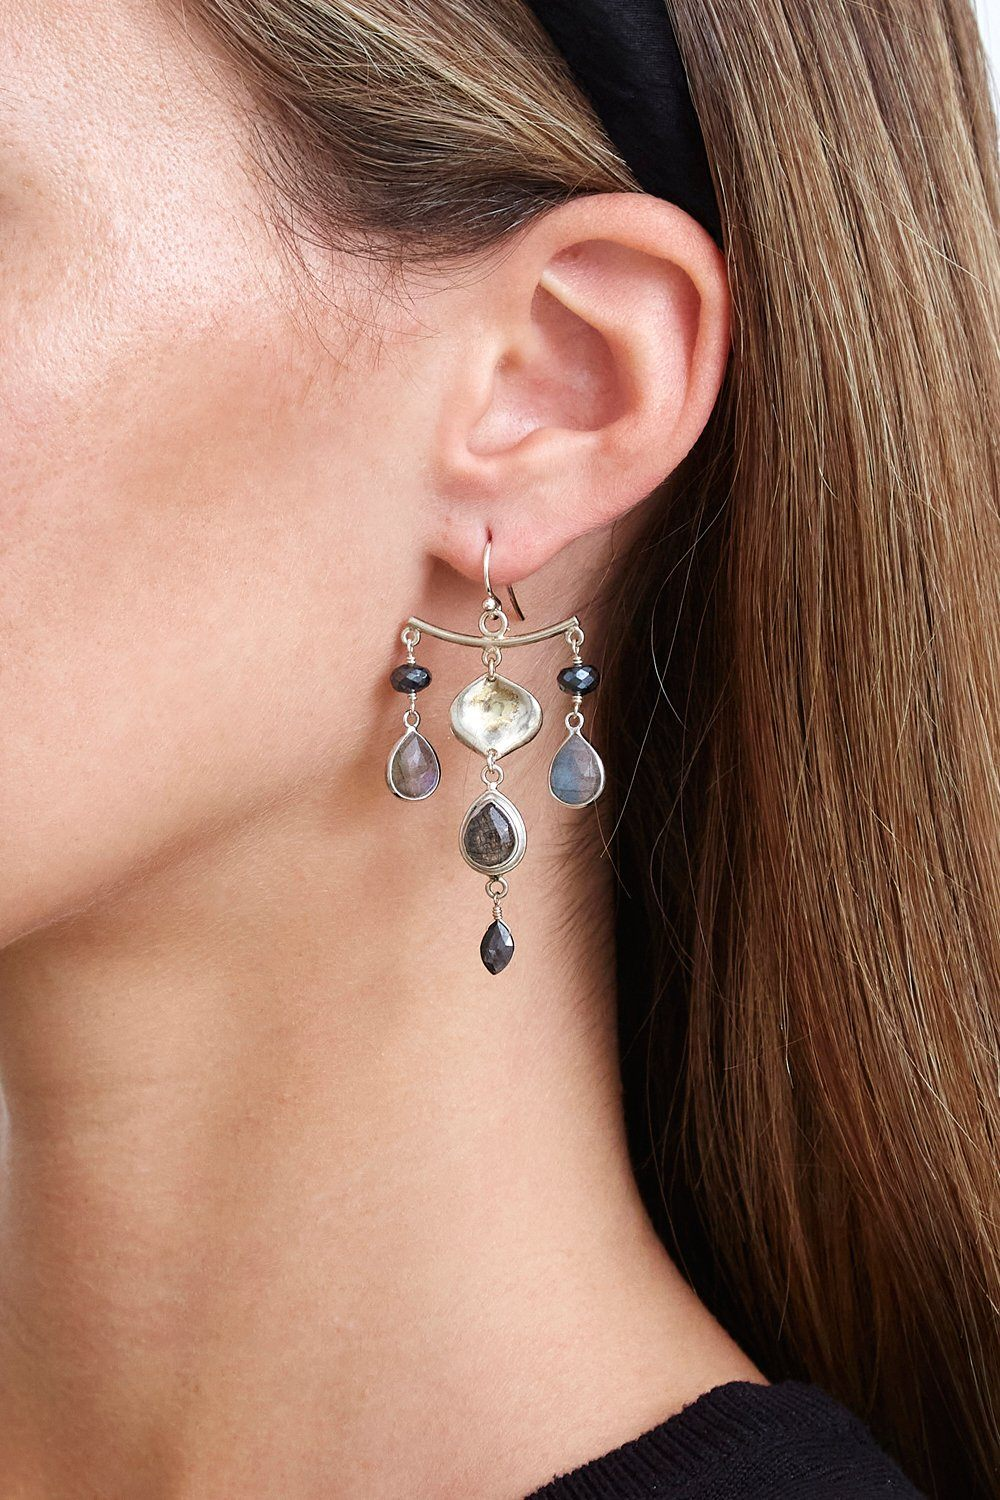 Black Mix Chandelier Earrings